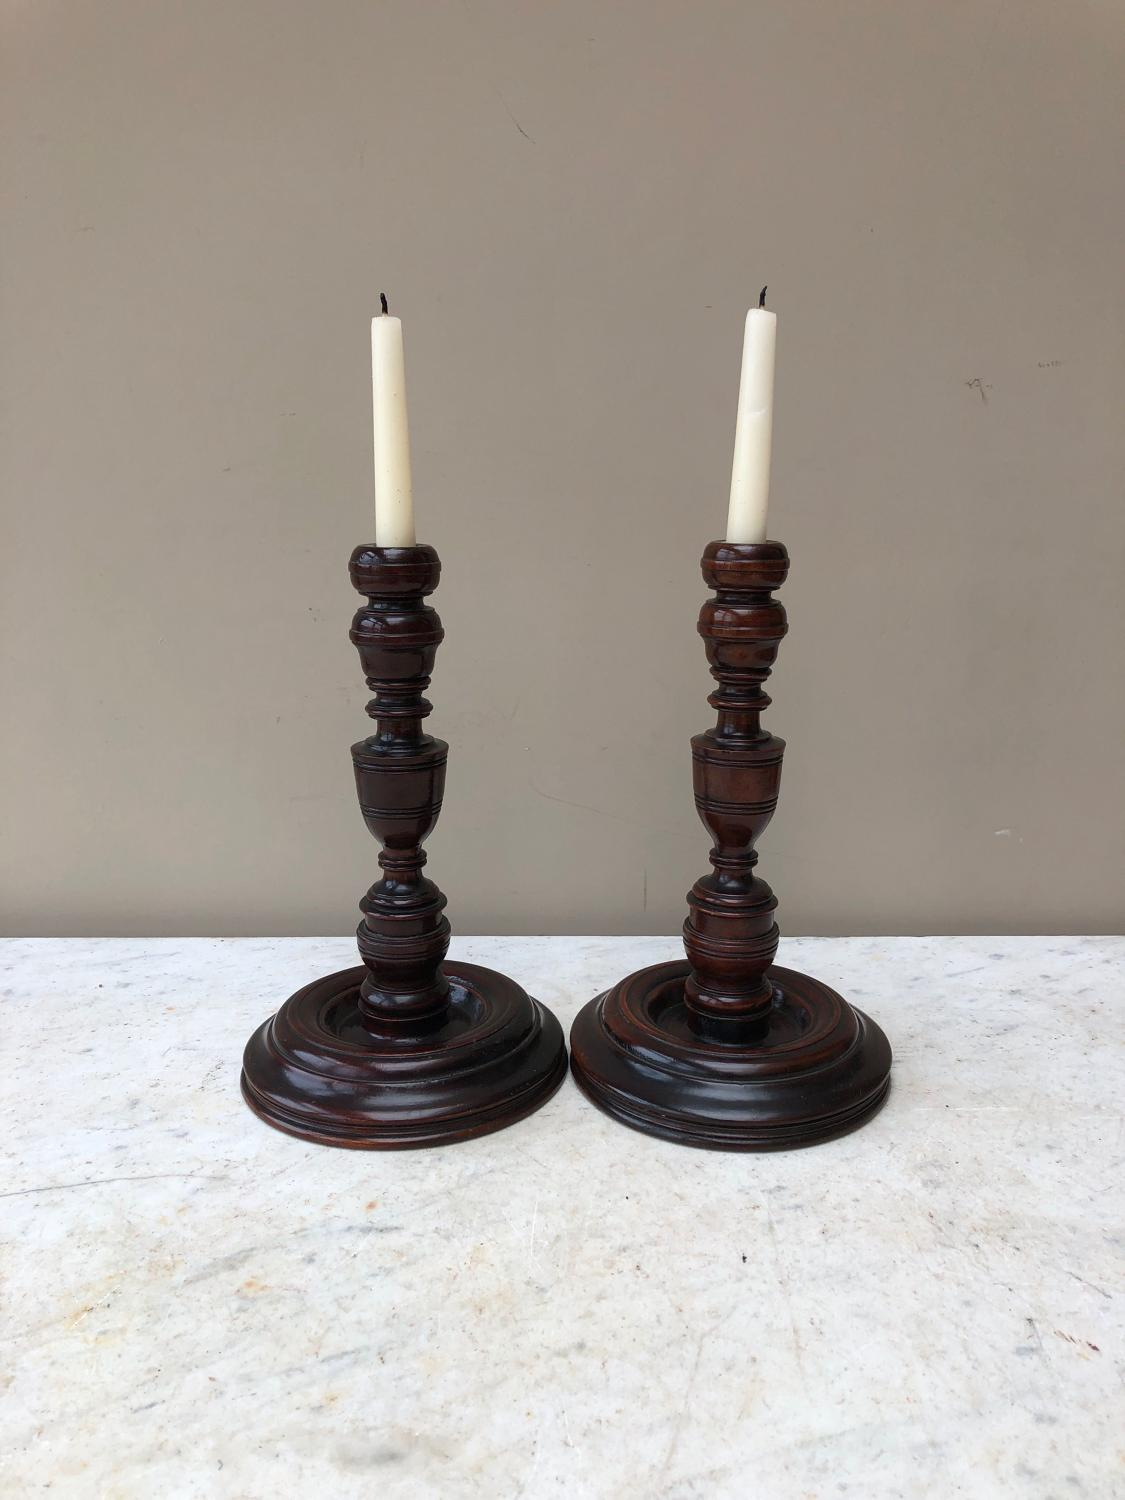 18th Century Pair of Treen Candlesticks c.1760 - Superb Quality